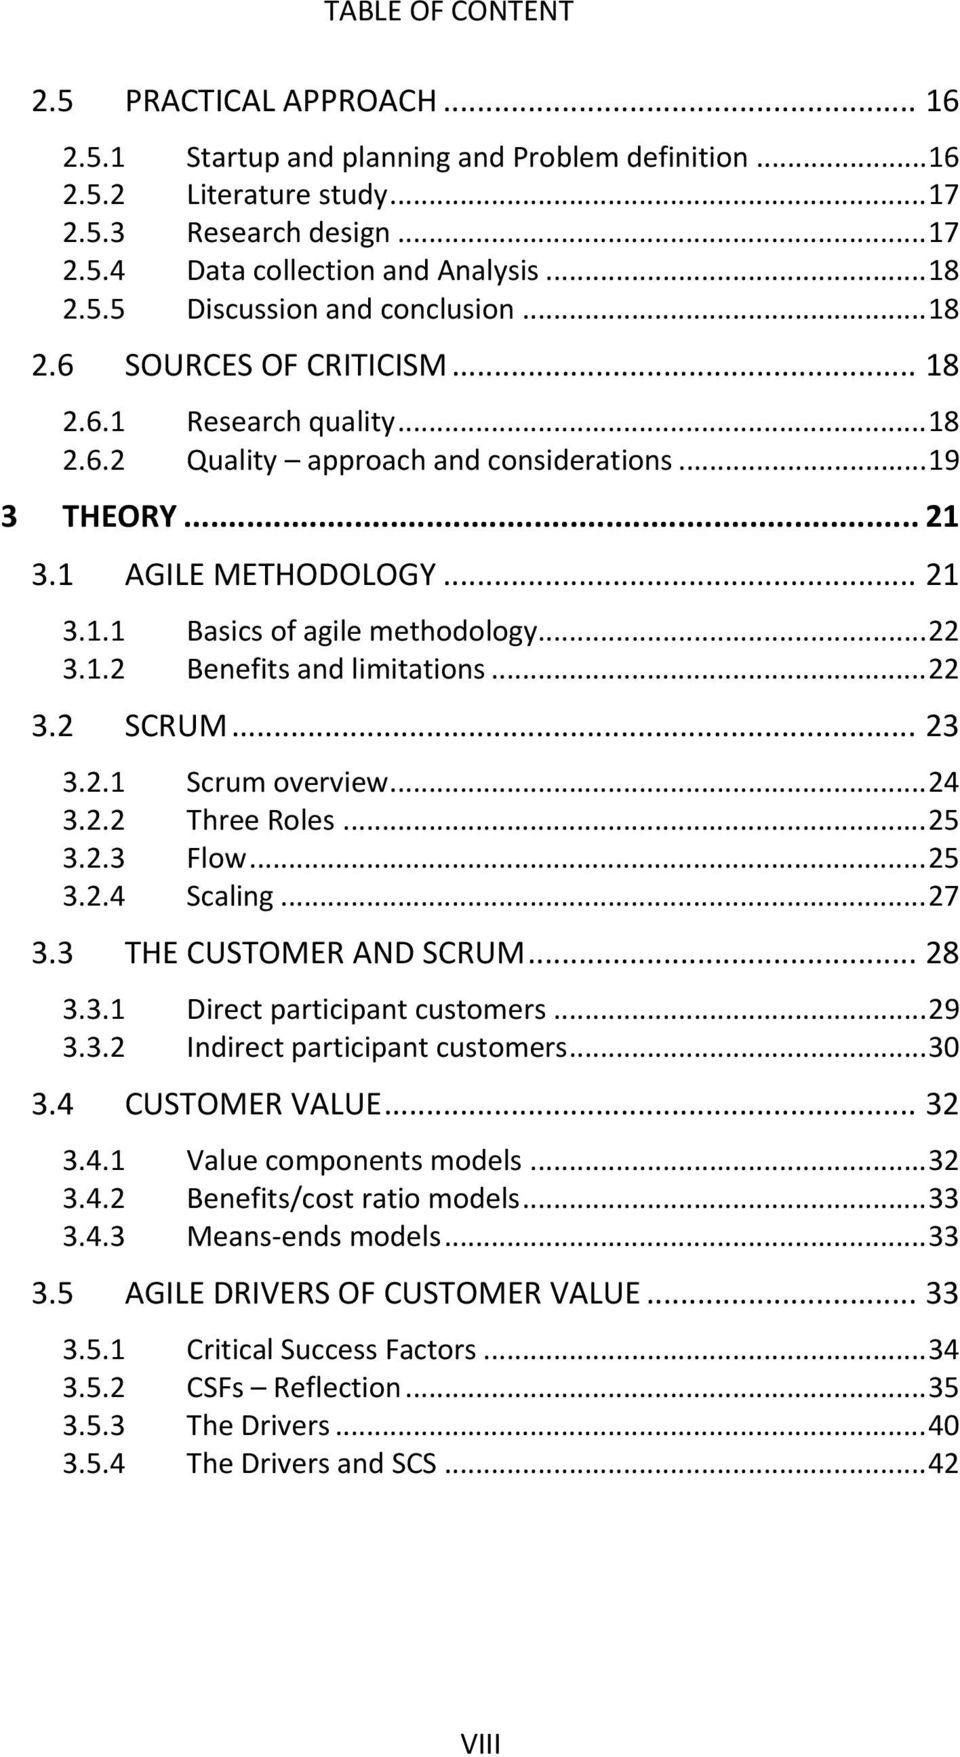 .. 22 3.1.2 Benefits and limitations... 22 3.2 SCRUM... 23 3.2.1 Scrum overview... 24 3.2.2 Three Roles... 25 3.2.3 Flow... 25 3.2.4 Scaling... 27 3.3 THE CUSTOMER AND SCRUM... 28 3.3.1 Direct participant customers.